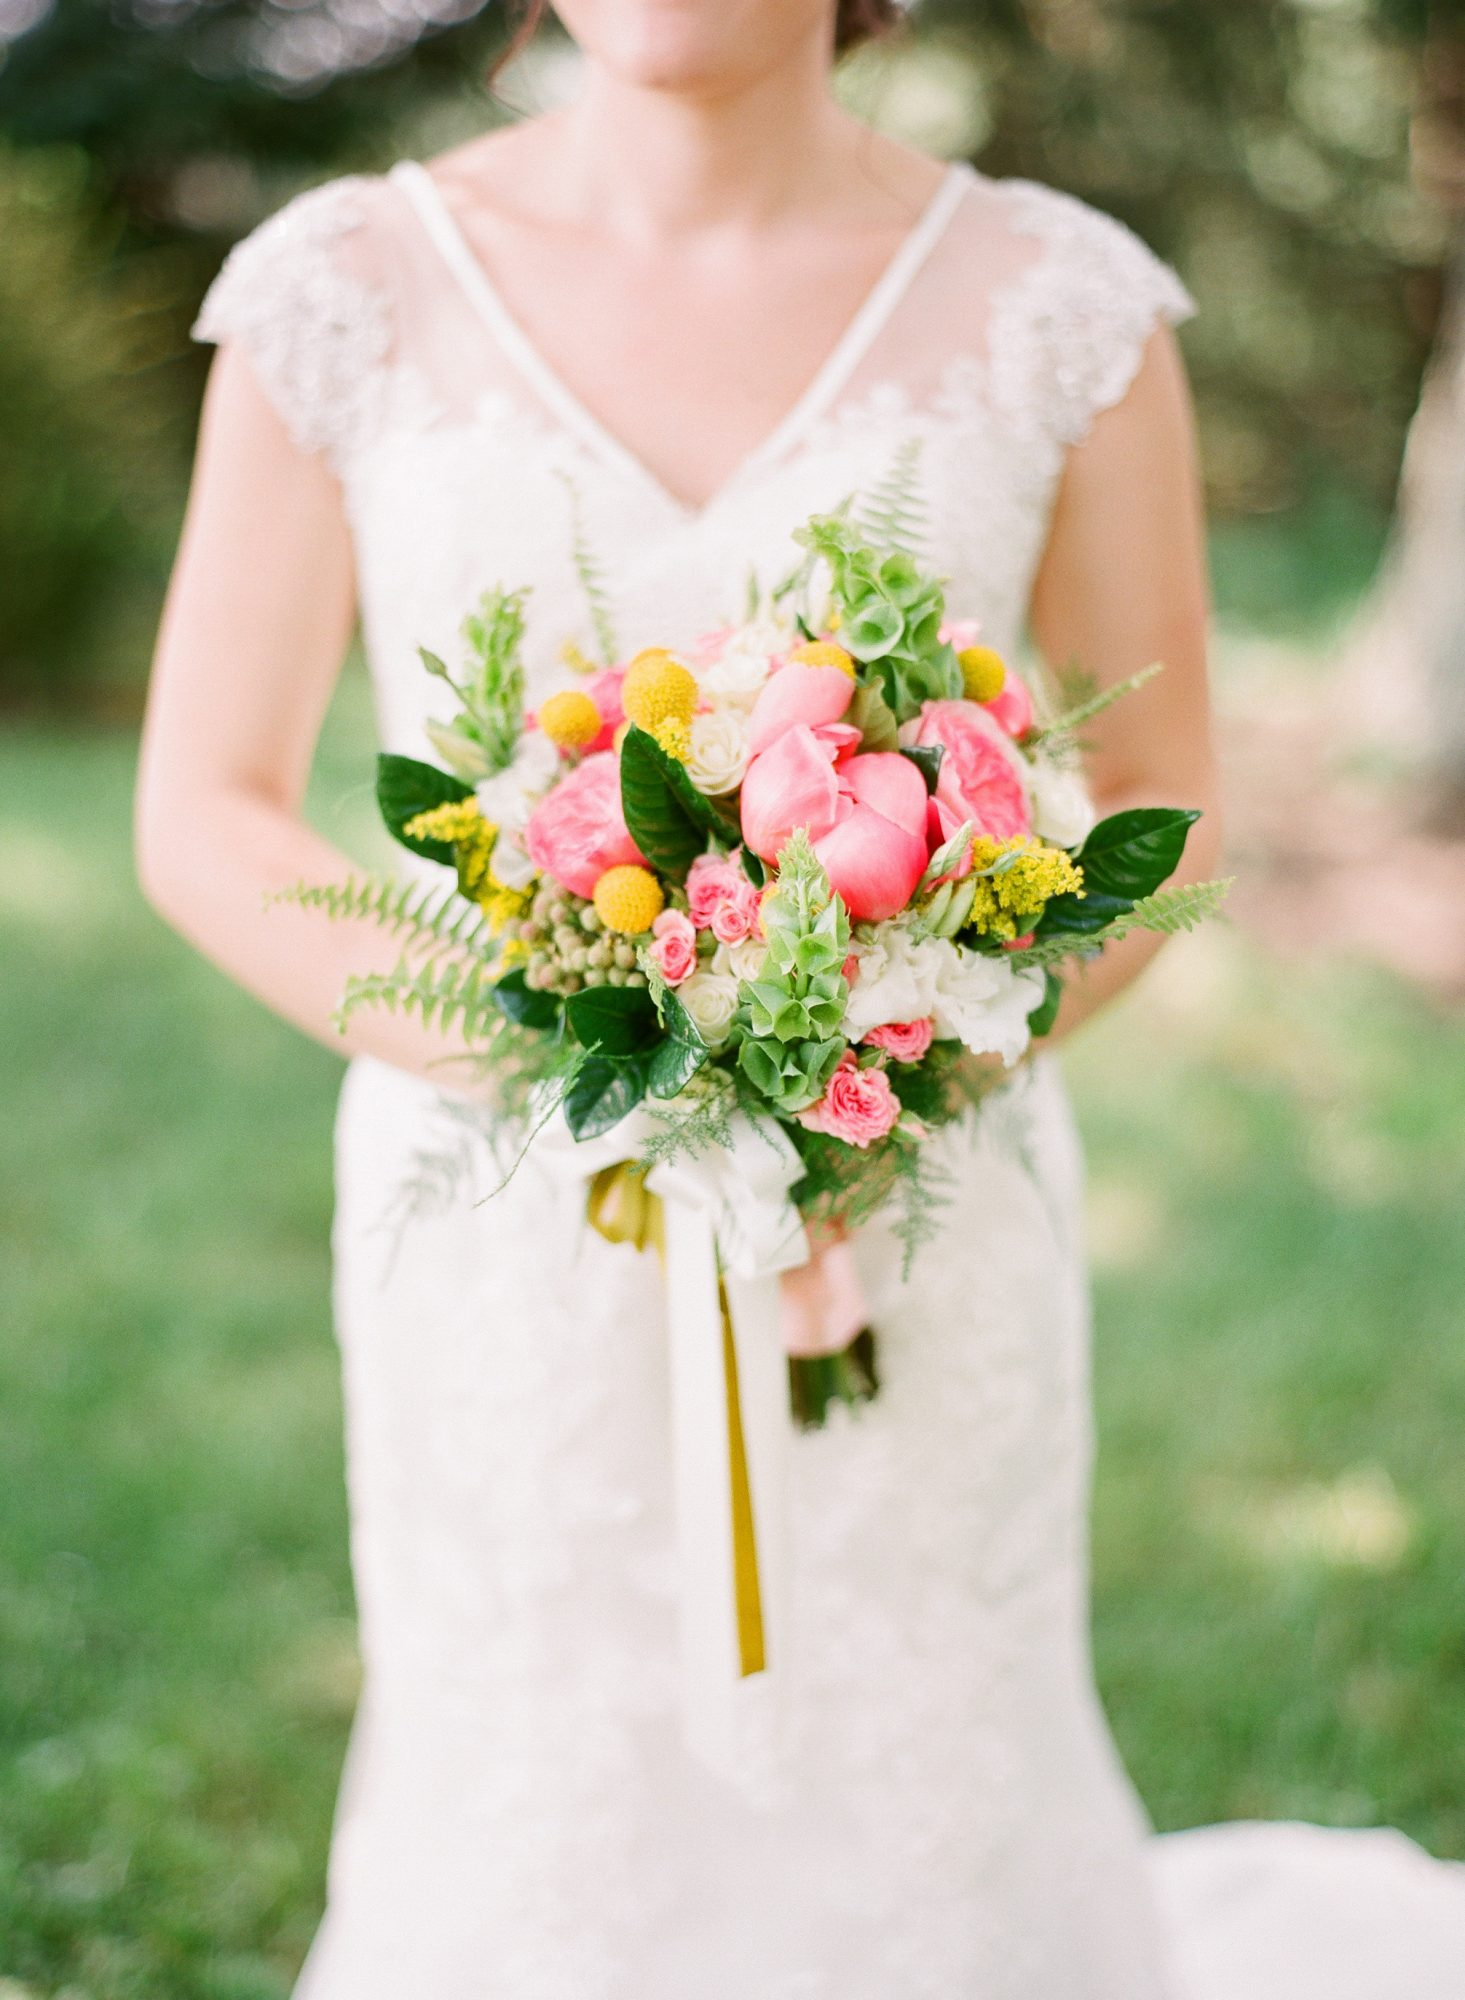 Fern Wedding Bouquet with Peonies and Bright Flowers